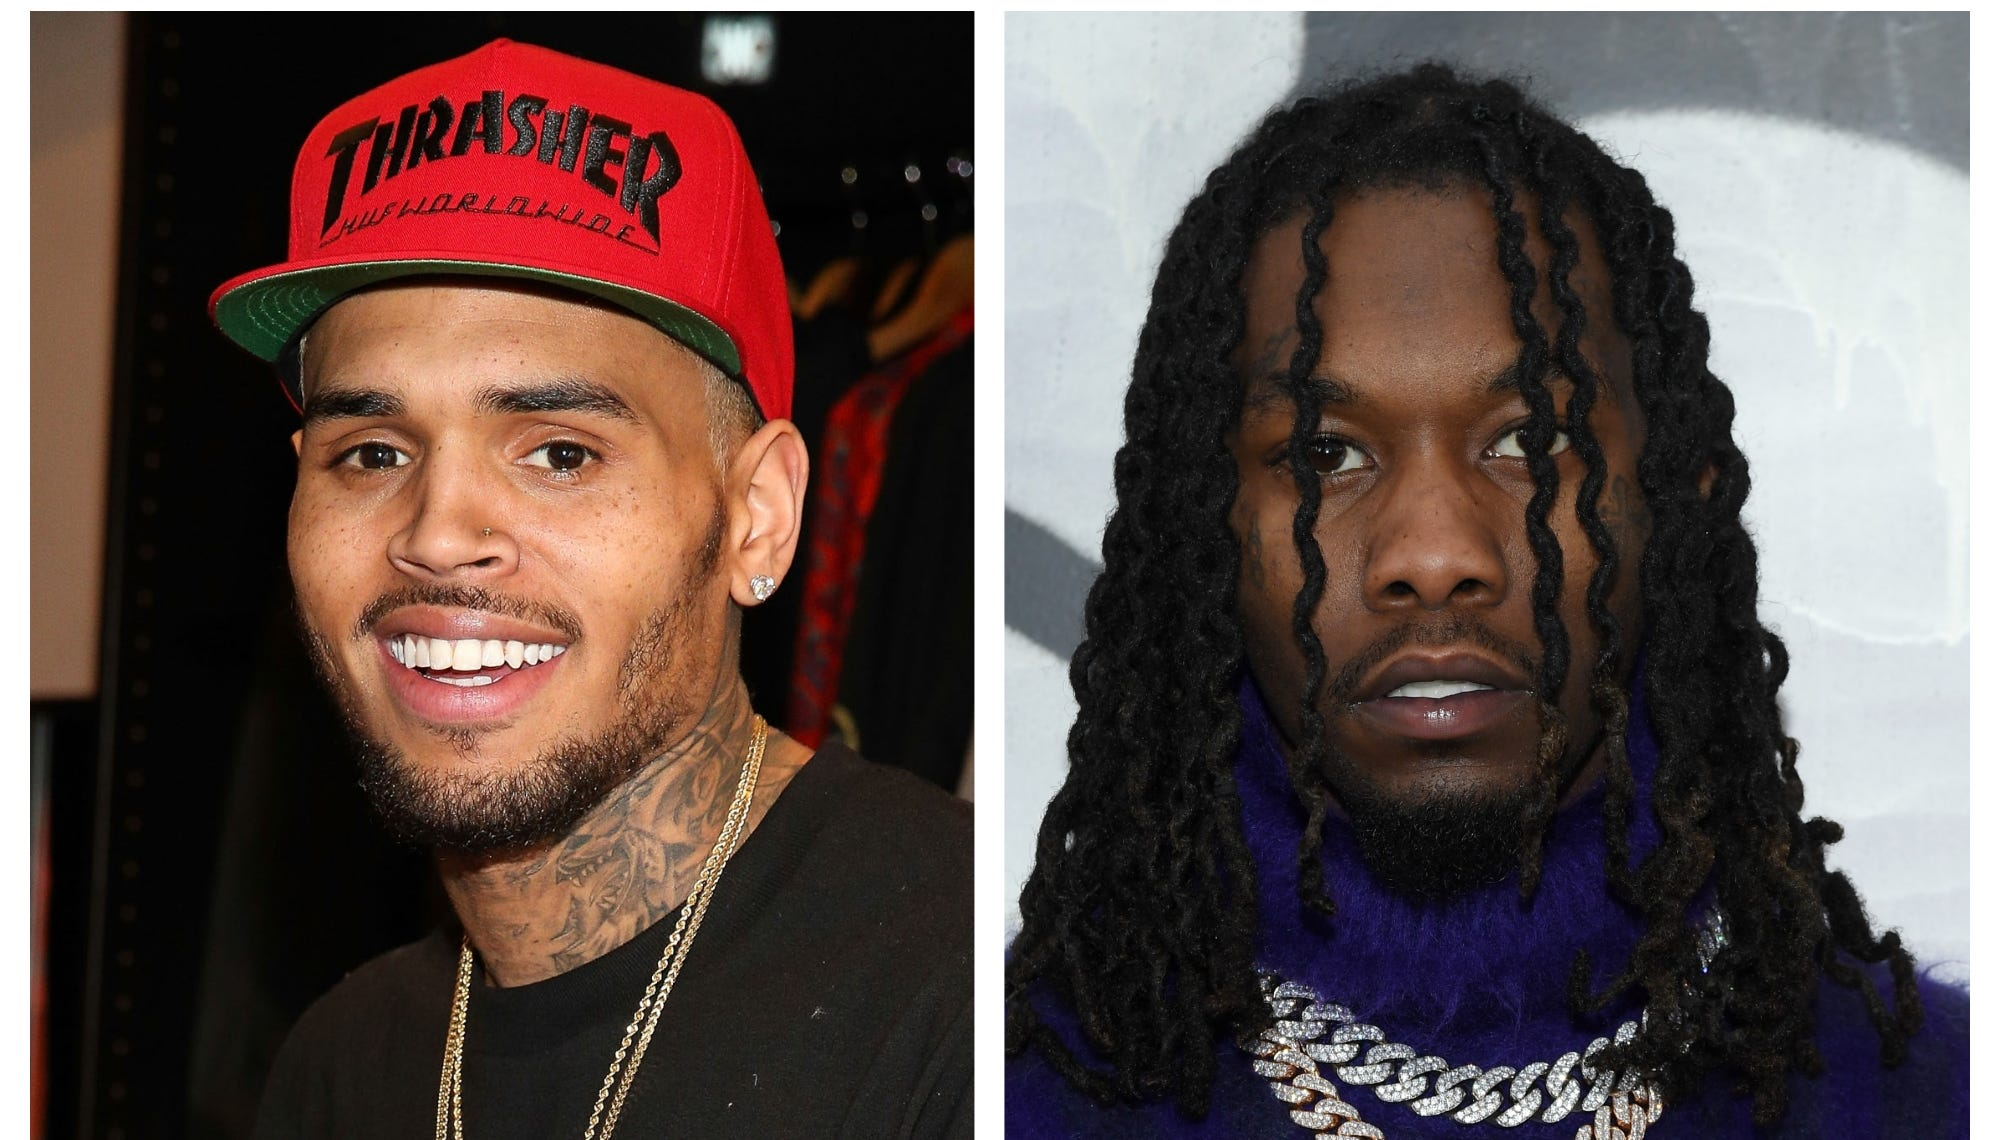 chris brown challenges offset to fight me over 21 savage meme chris brown challenges offset to fight